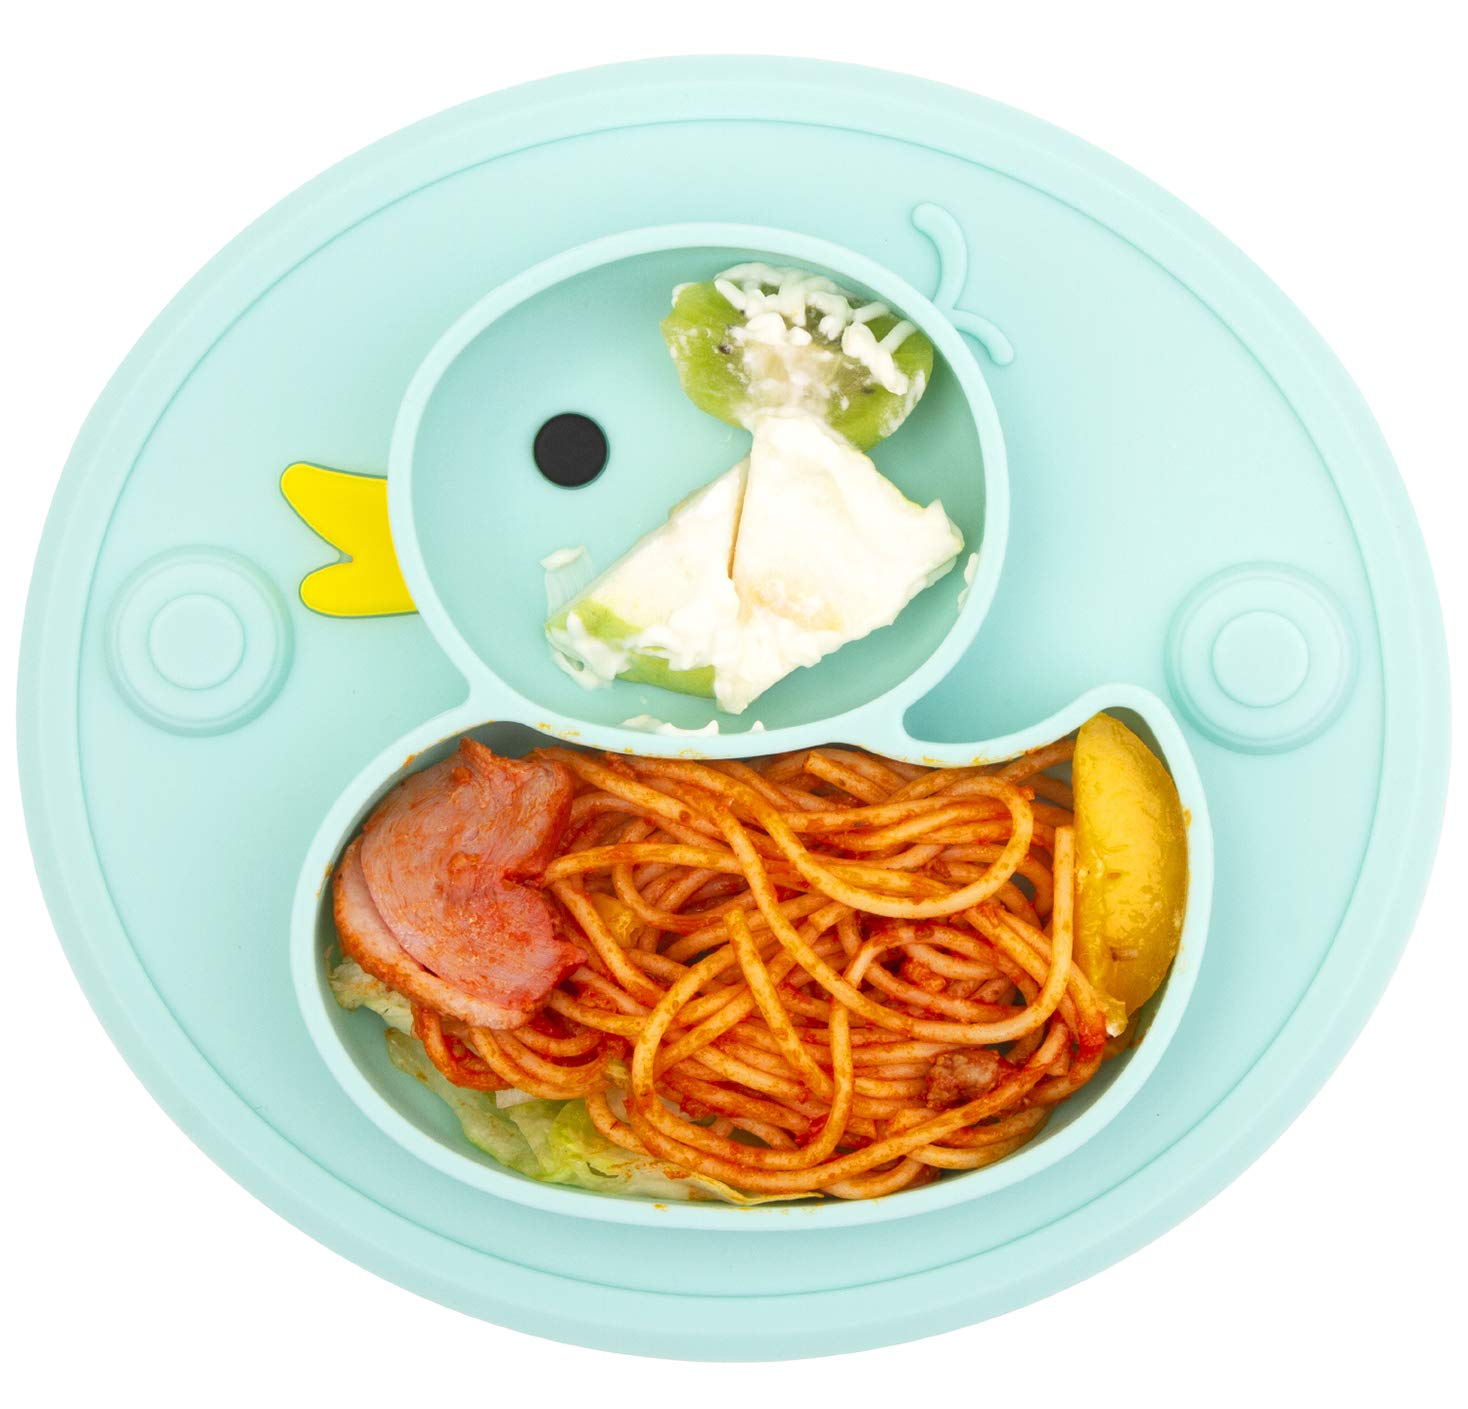 Lightening Corp Baby Plate Silicone Toddler Plates Suction Placemat Divided Duck Dishes for Kids and Infants One-Piece Strong Suction, BPA Free, Microwave Dishwasher Safe